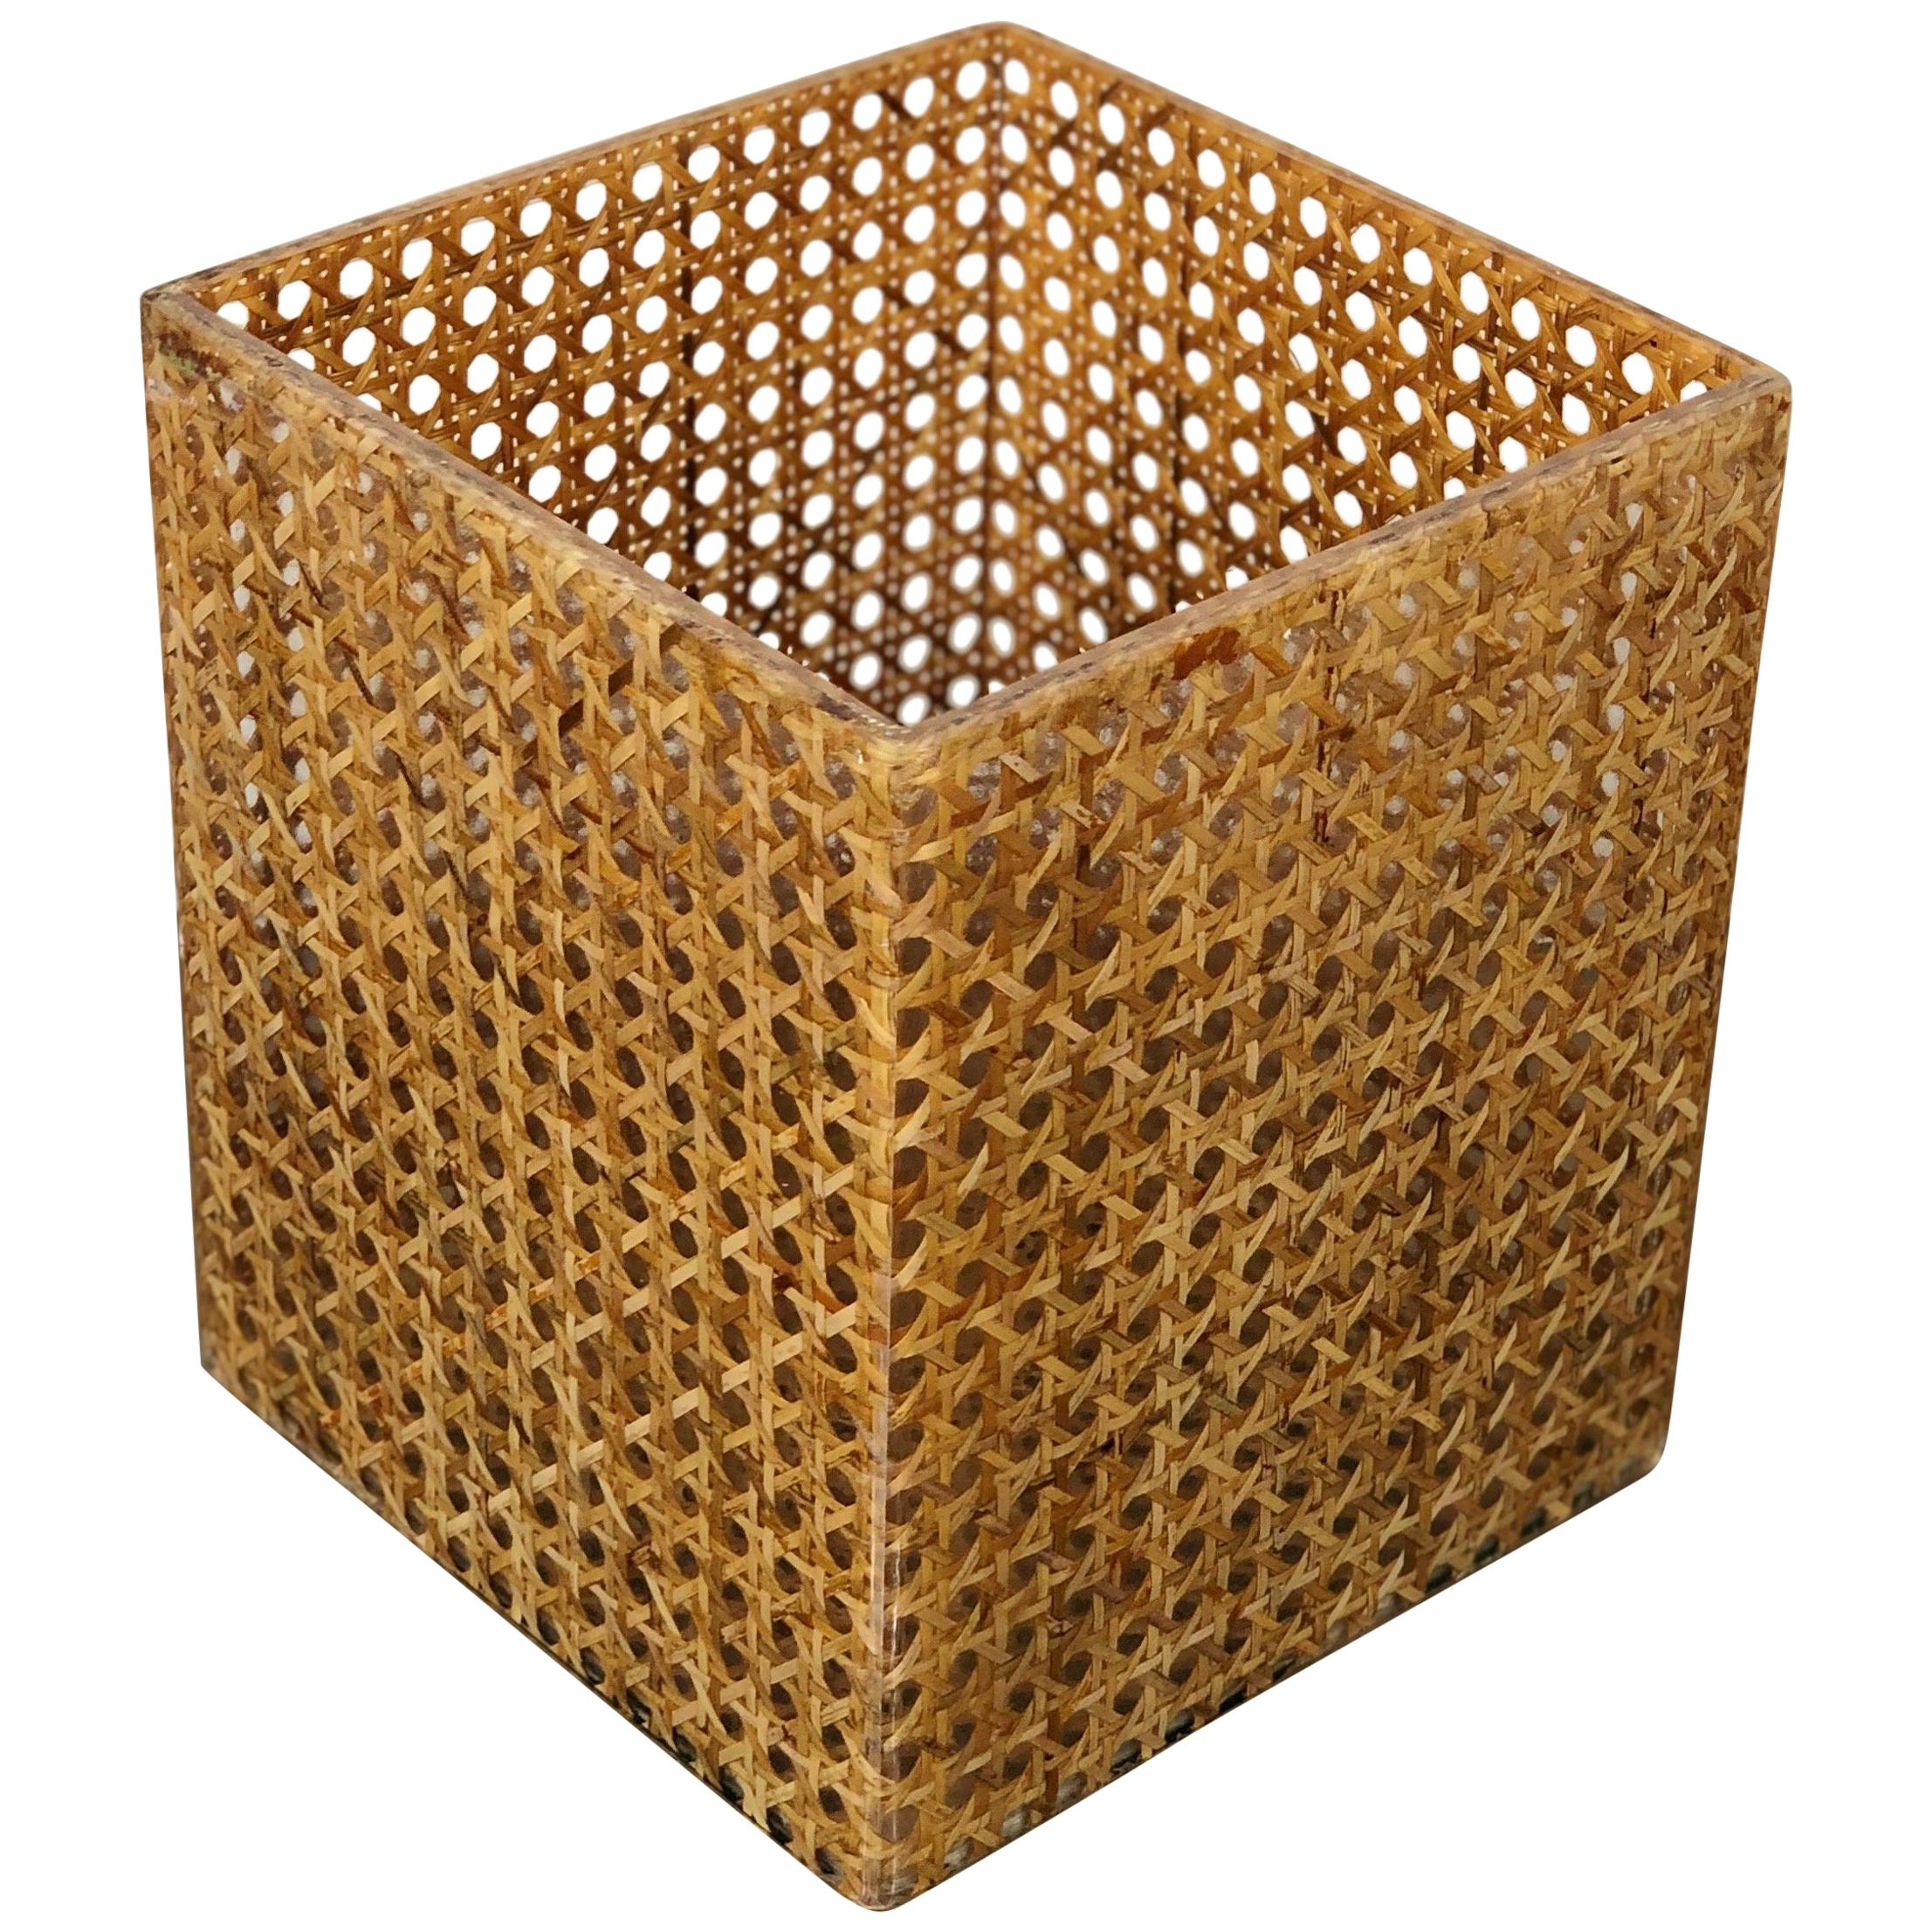 Wicker Lucite Box Vase in Christian Dior Style